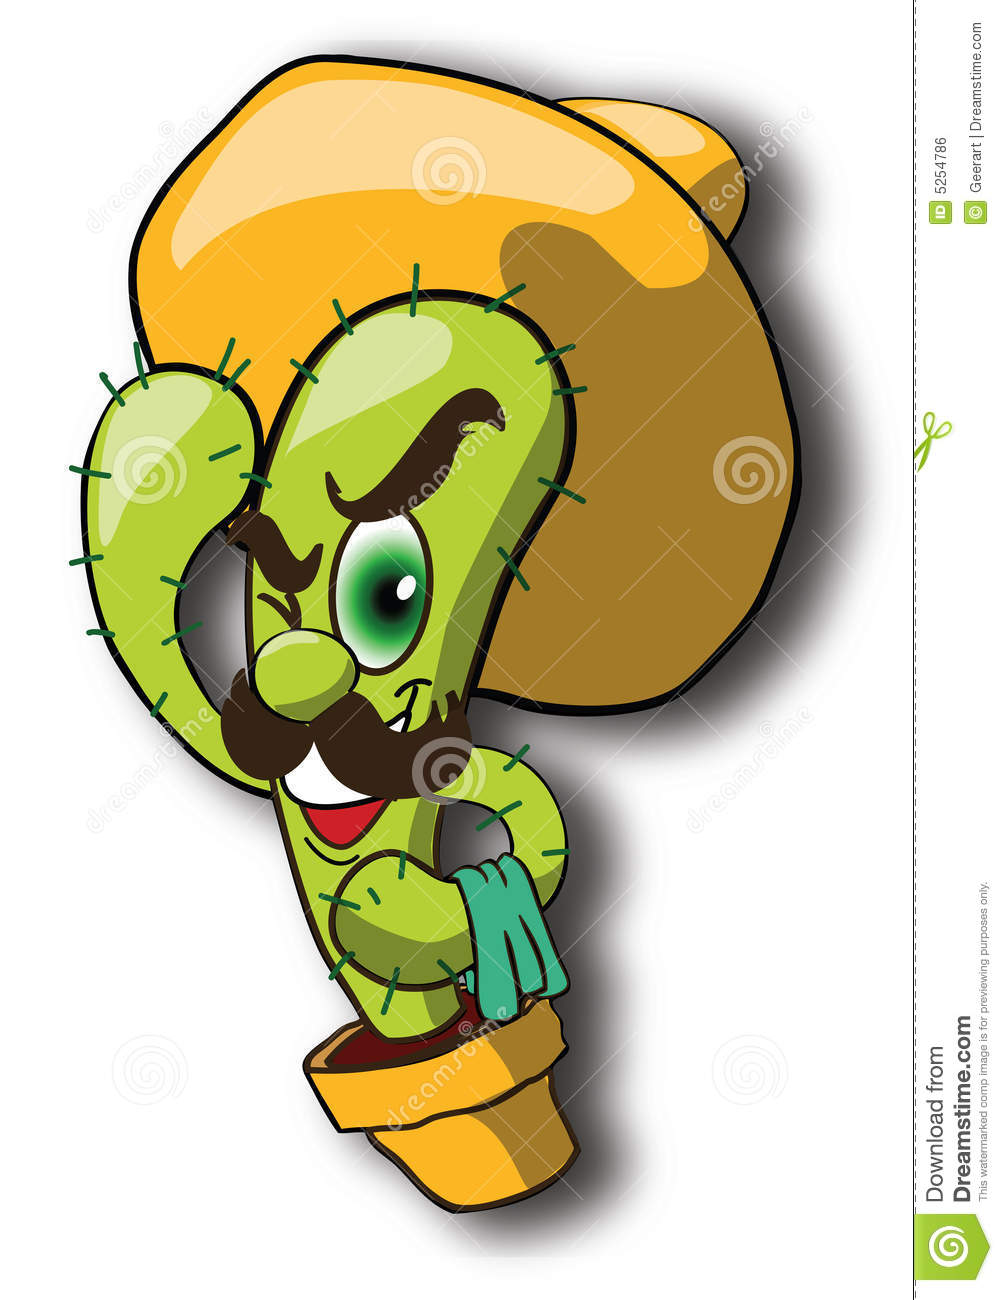 Mexican Cactus Sombrero Royalty Free Stock Image - Image: 5254786